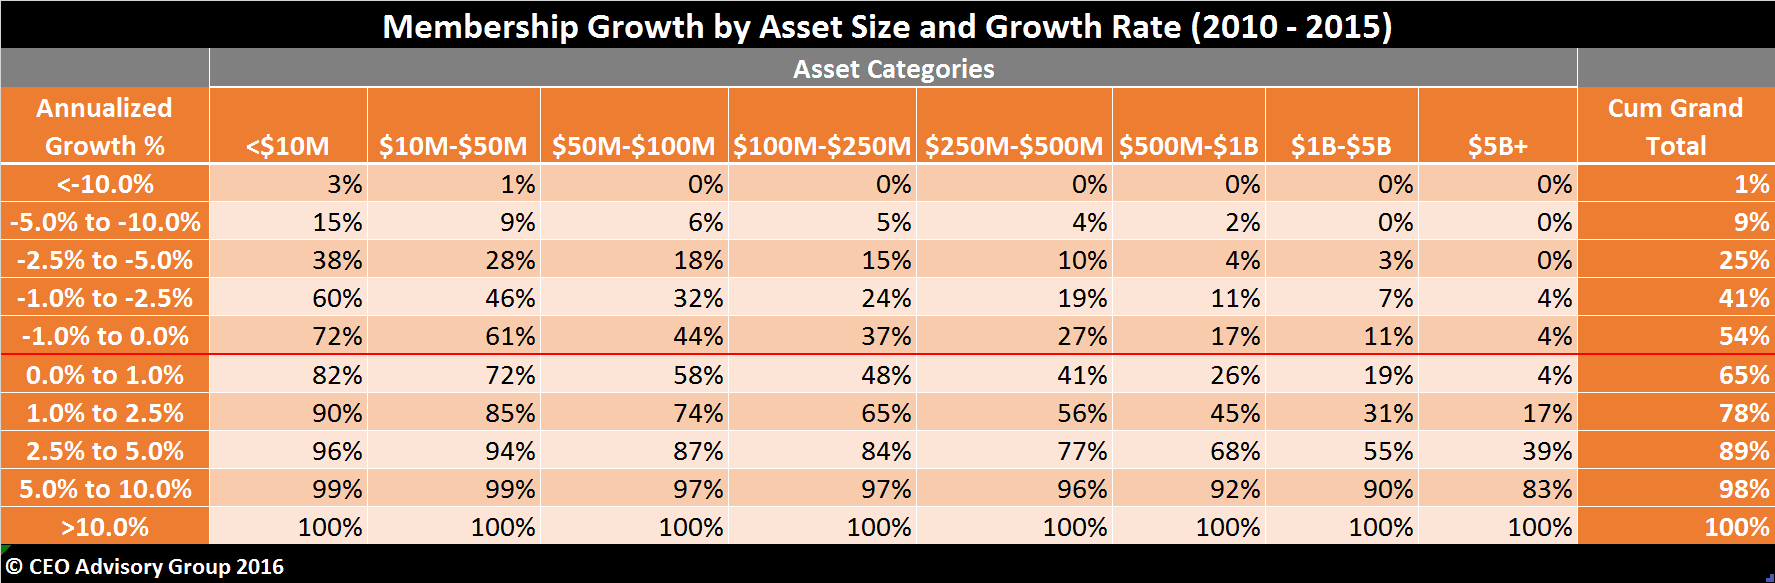 Membership-Growth-by-Asset-Size-&-Growth-Rate